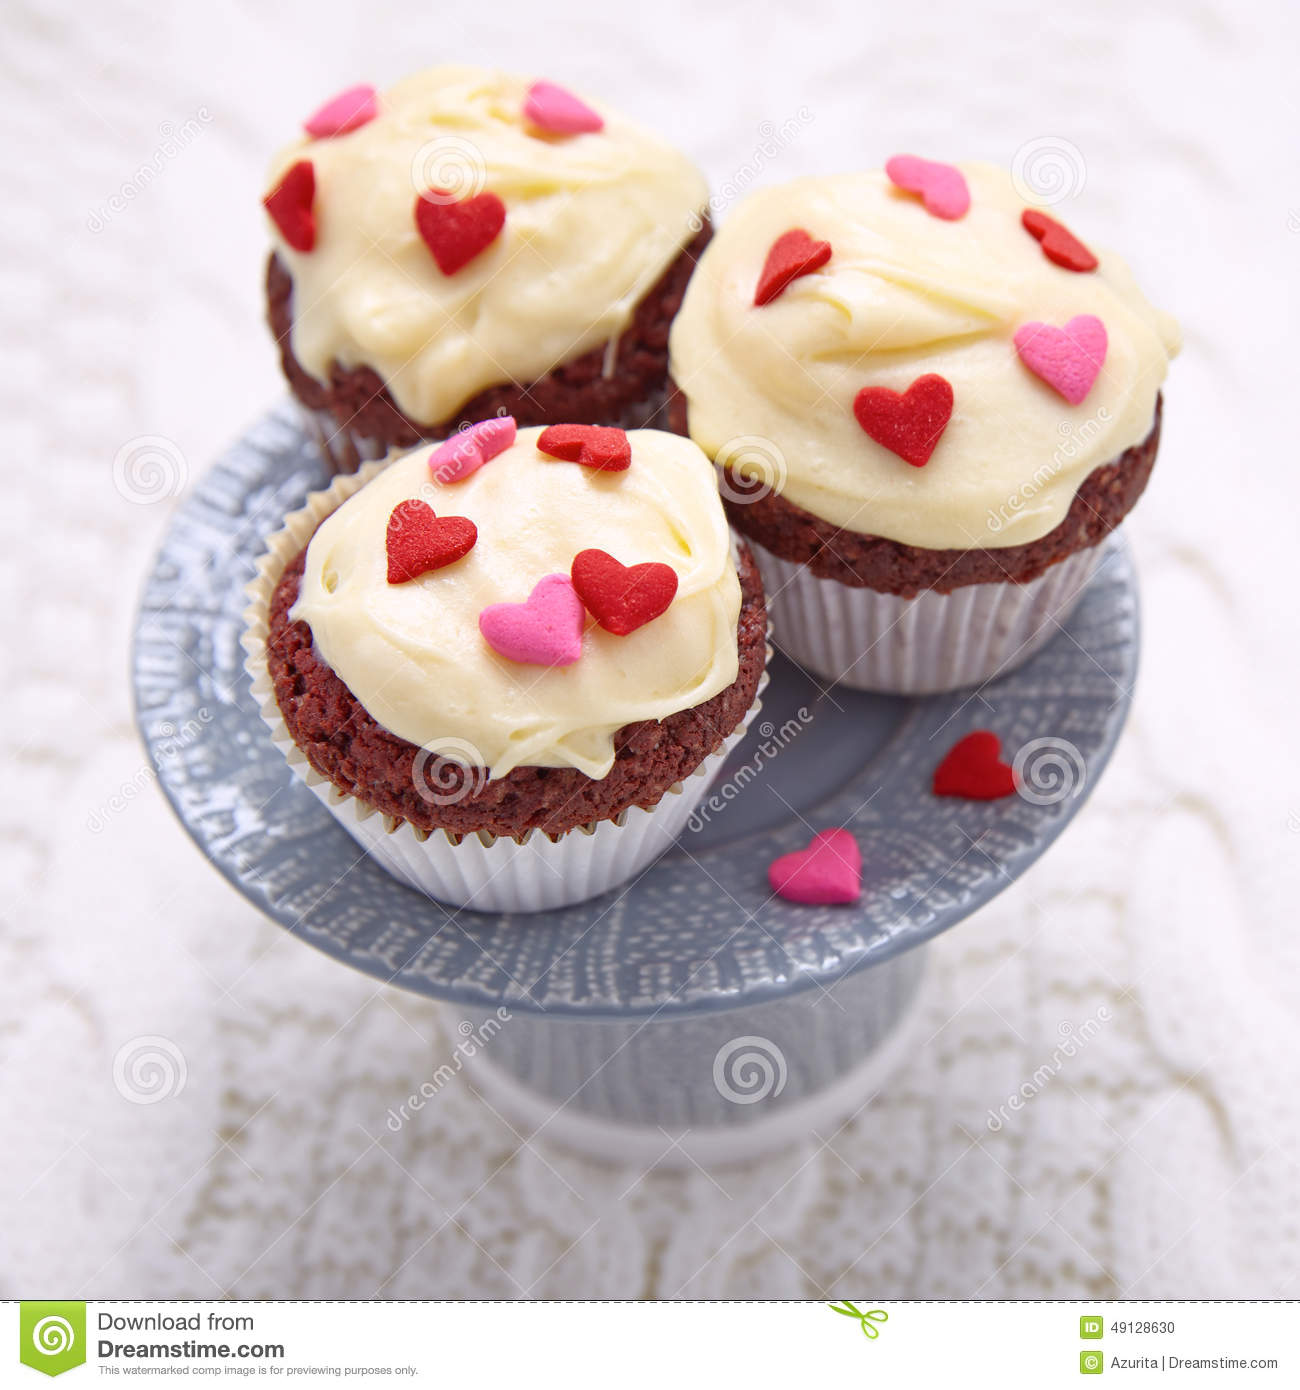 Cupcakes Decorated with Hearts